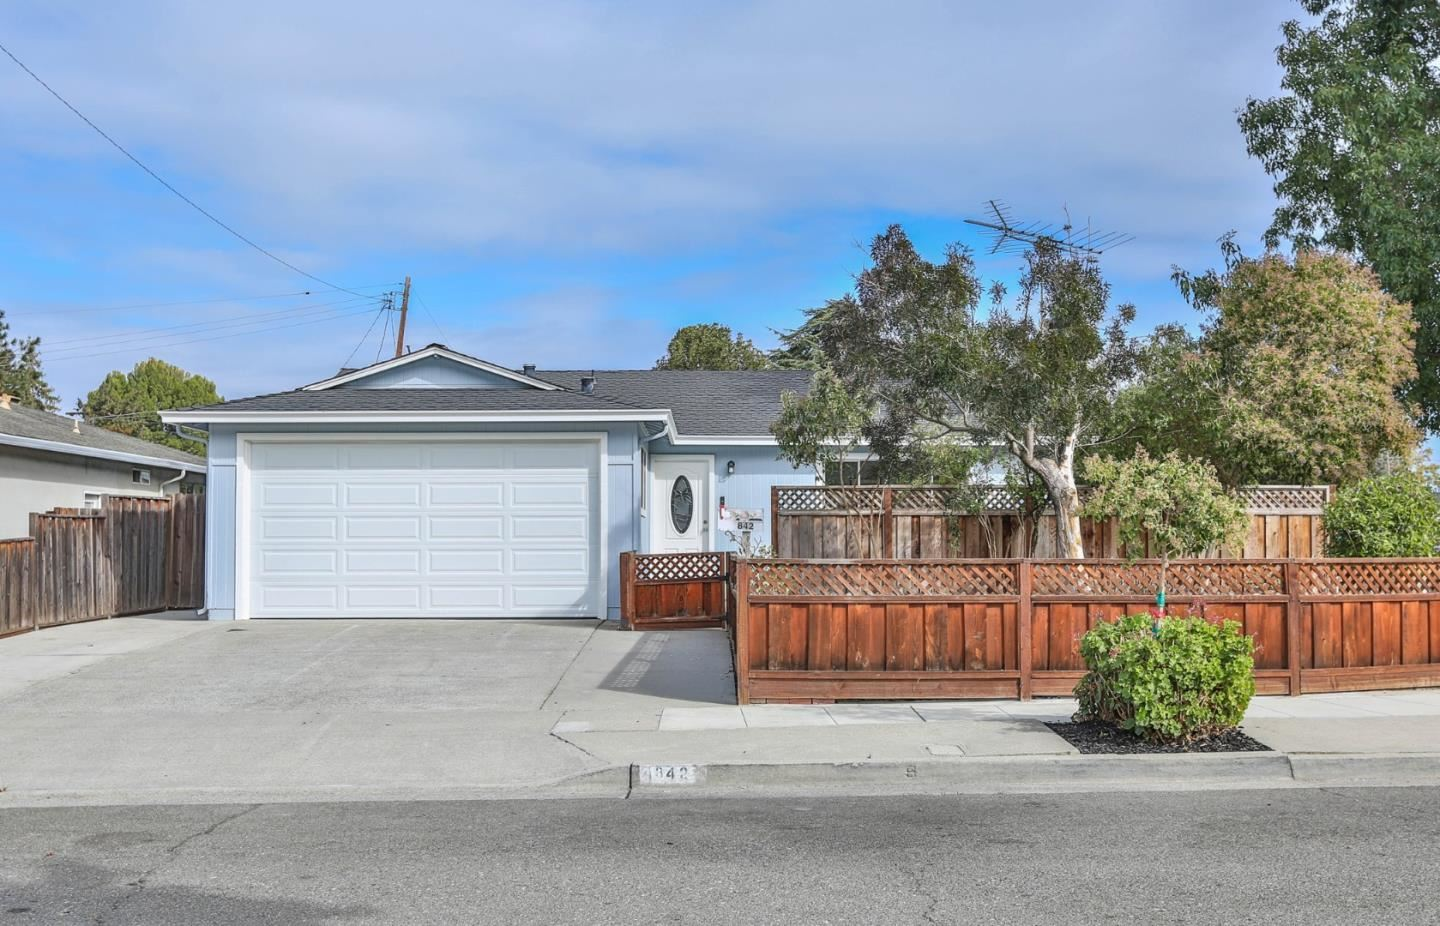 842 Mary Court, Campbell, CA 95008 - MLS#: ML81866750